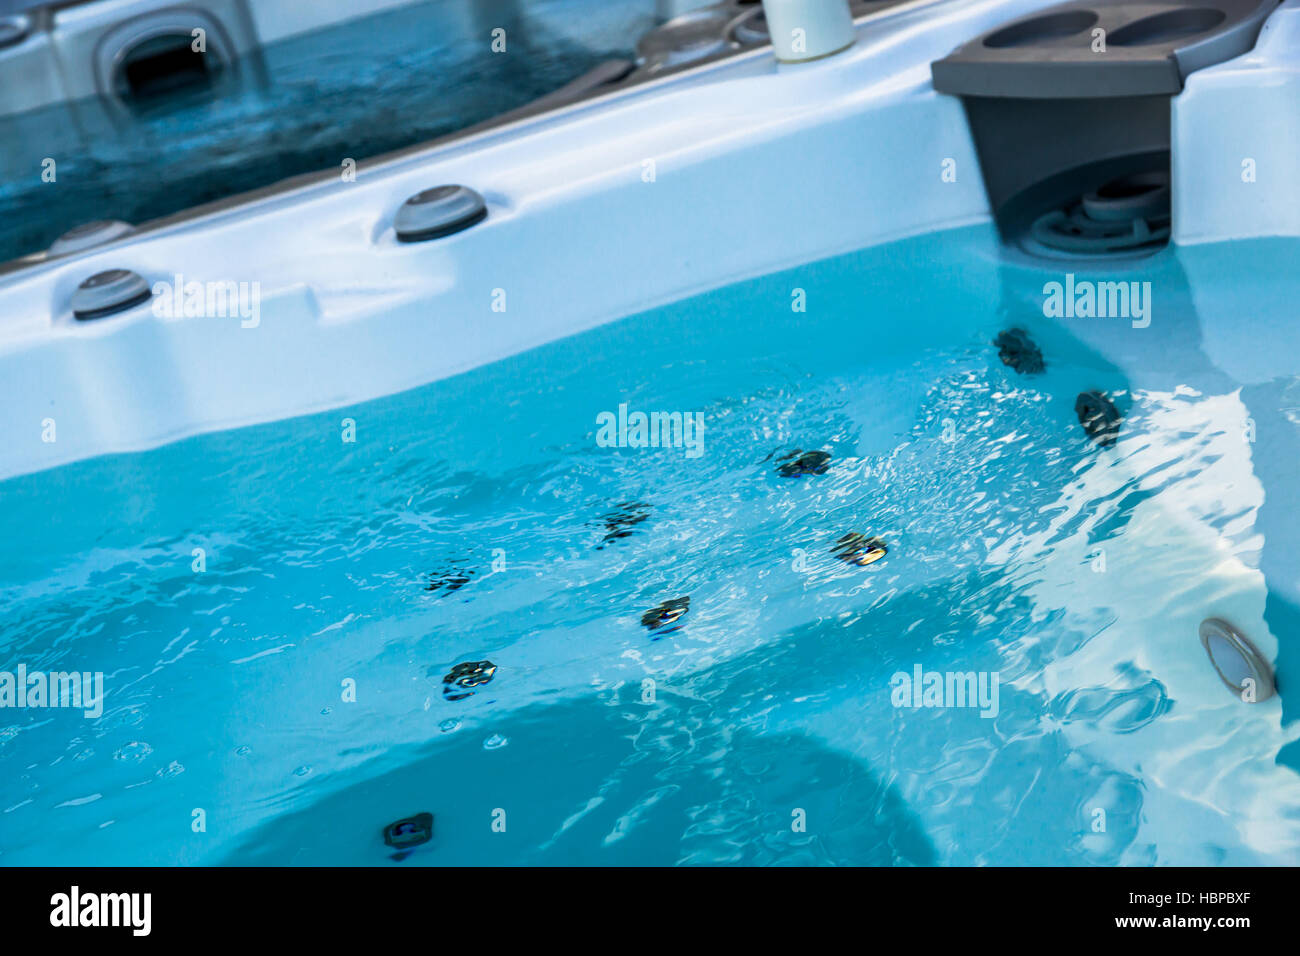 Wash Tubs Stock Photos & Wash Tubs Stock Images - Alamy